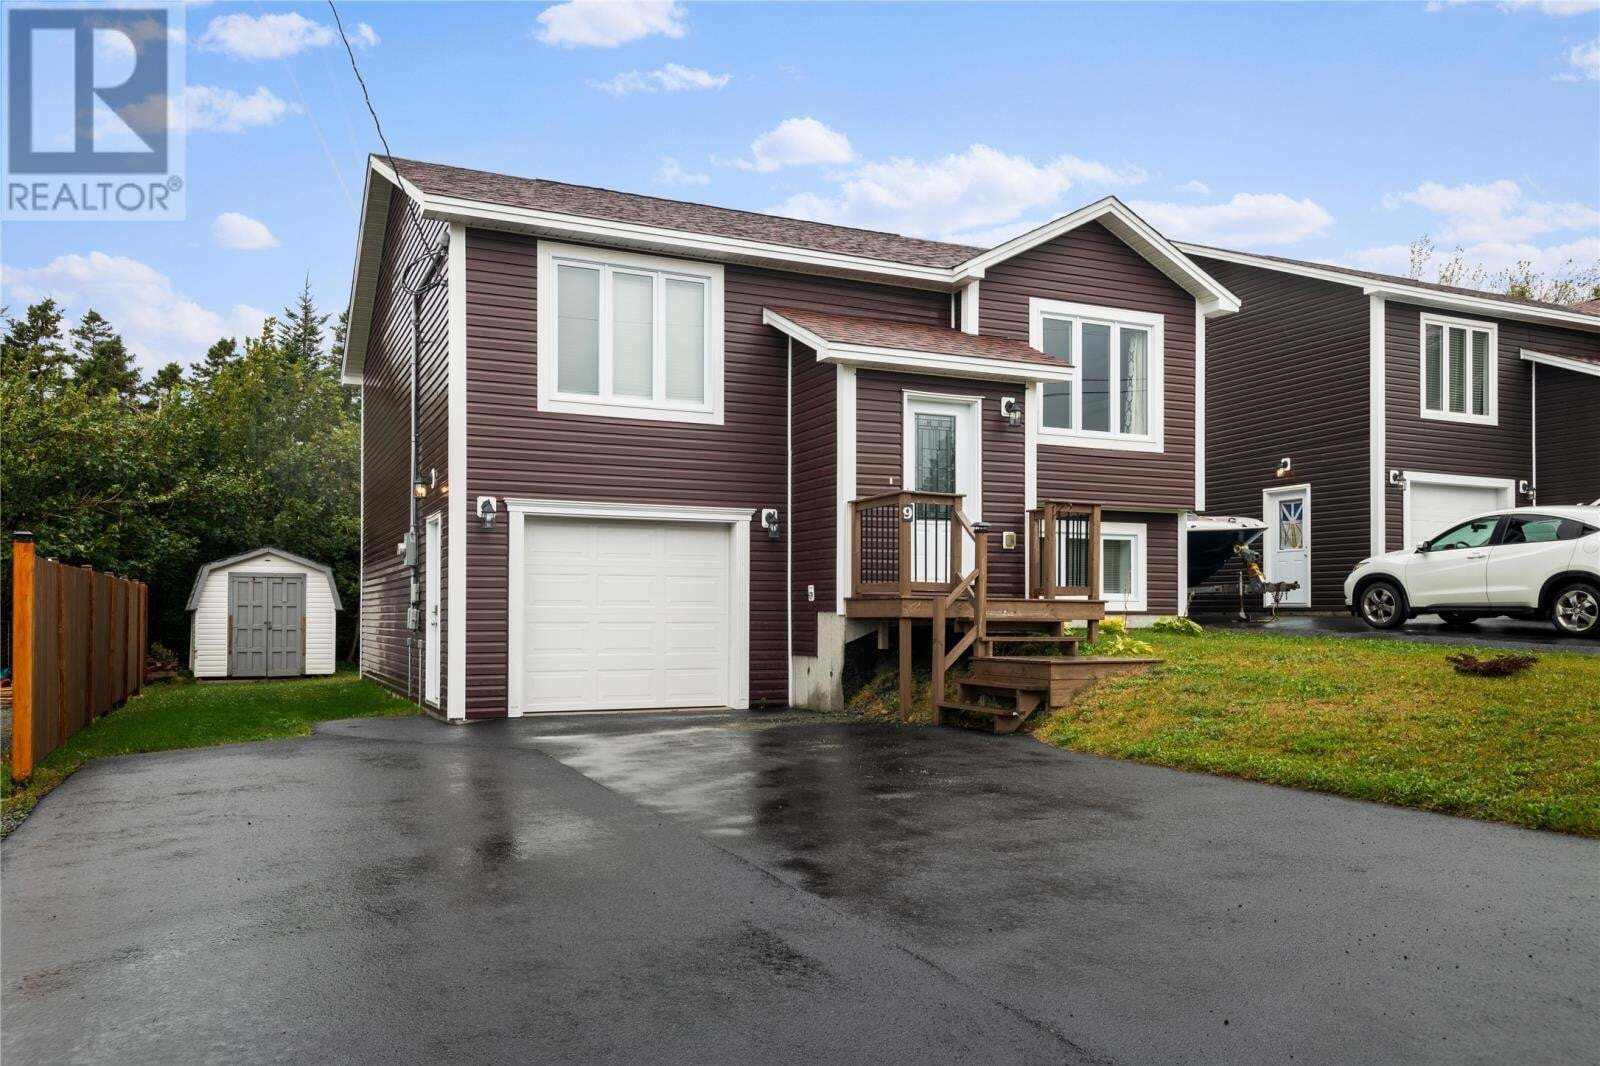 House for sale at 9 Millers Rd Portugal Cove Newfoundland - MLS: 1221920